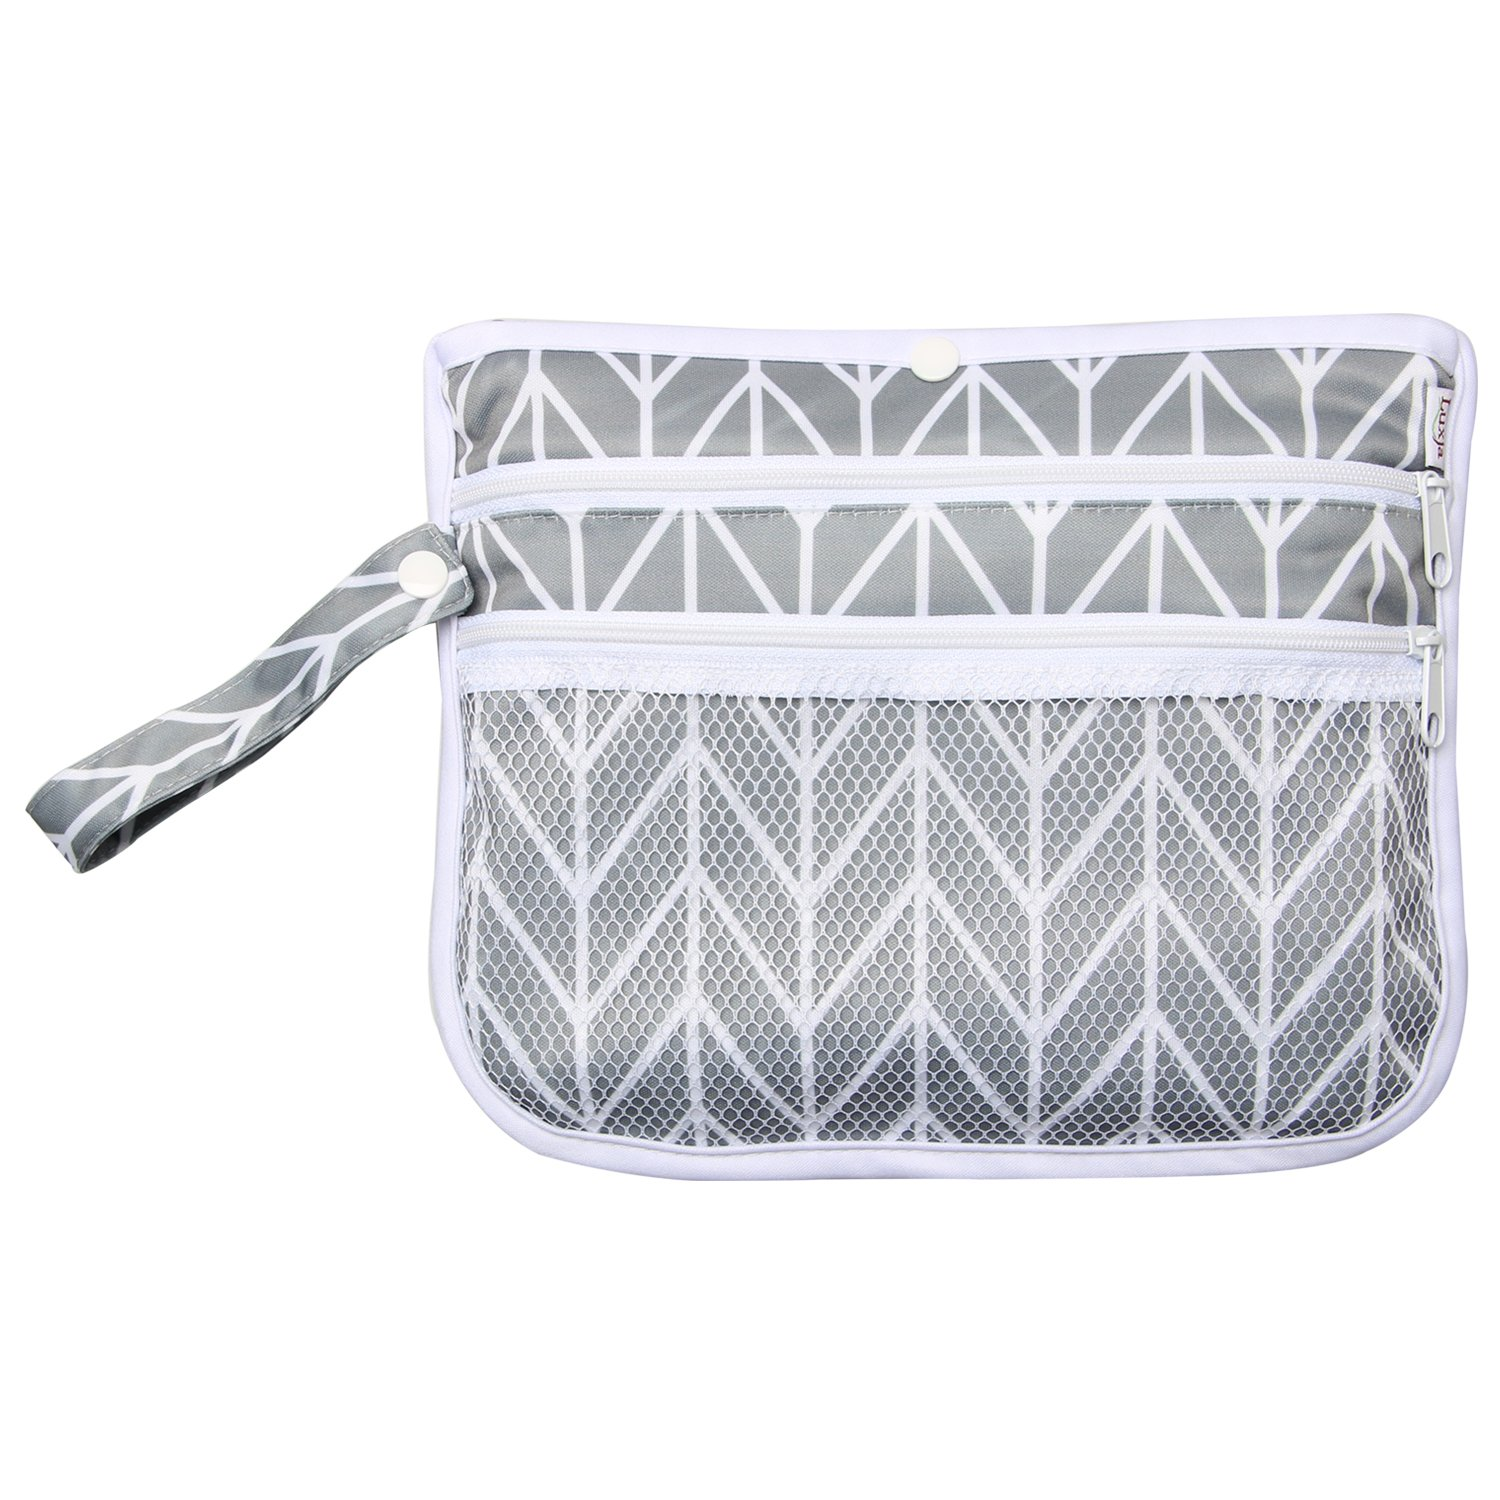 Foldable and Waterproof Luxja Portable Diaper Changing Pad Baby Changing Mat Travel Changing Pad Cover Gray Chevron